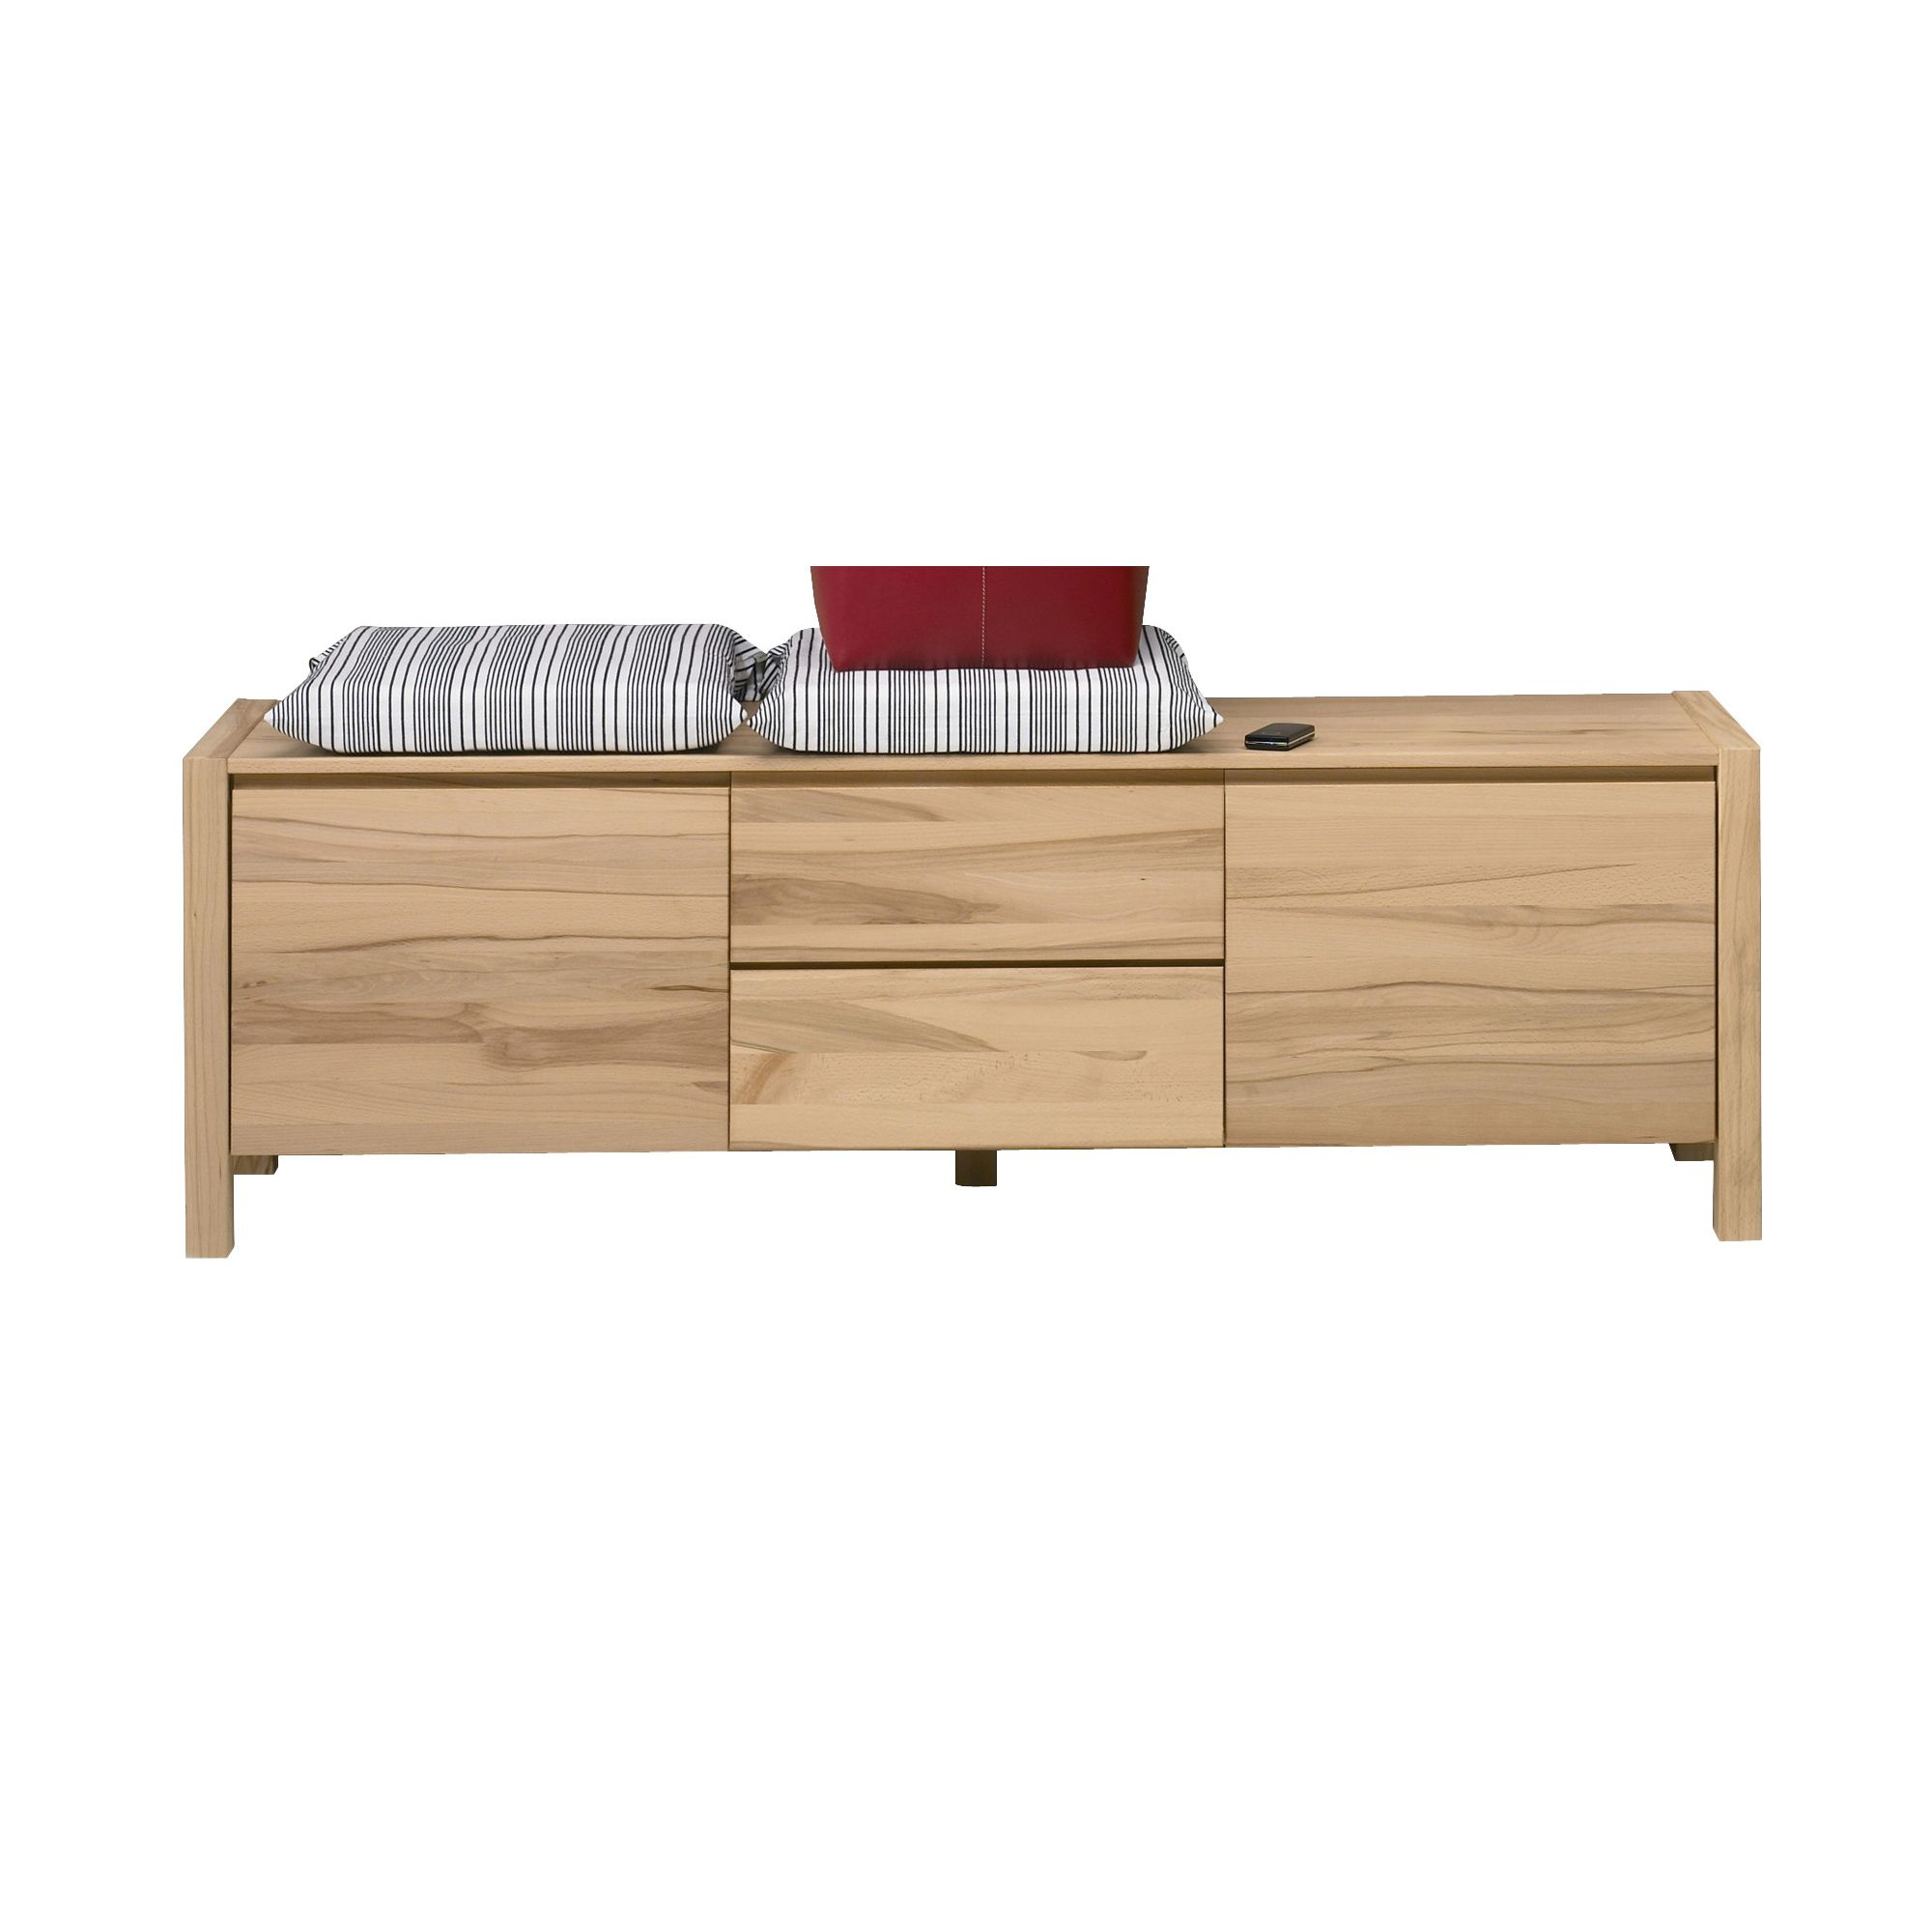 Oestergaard Mille Low Chest of Drawers 159cm - Heartwood Beech solid at Tesco Direct